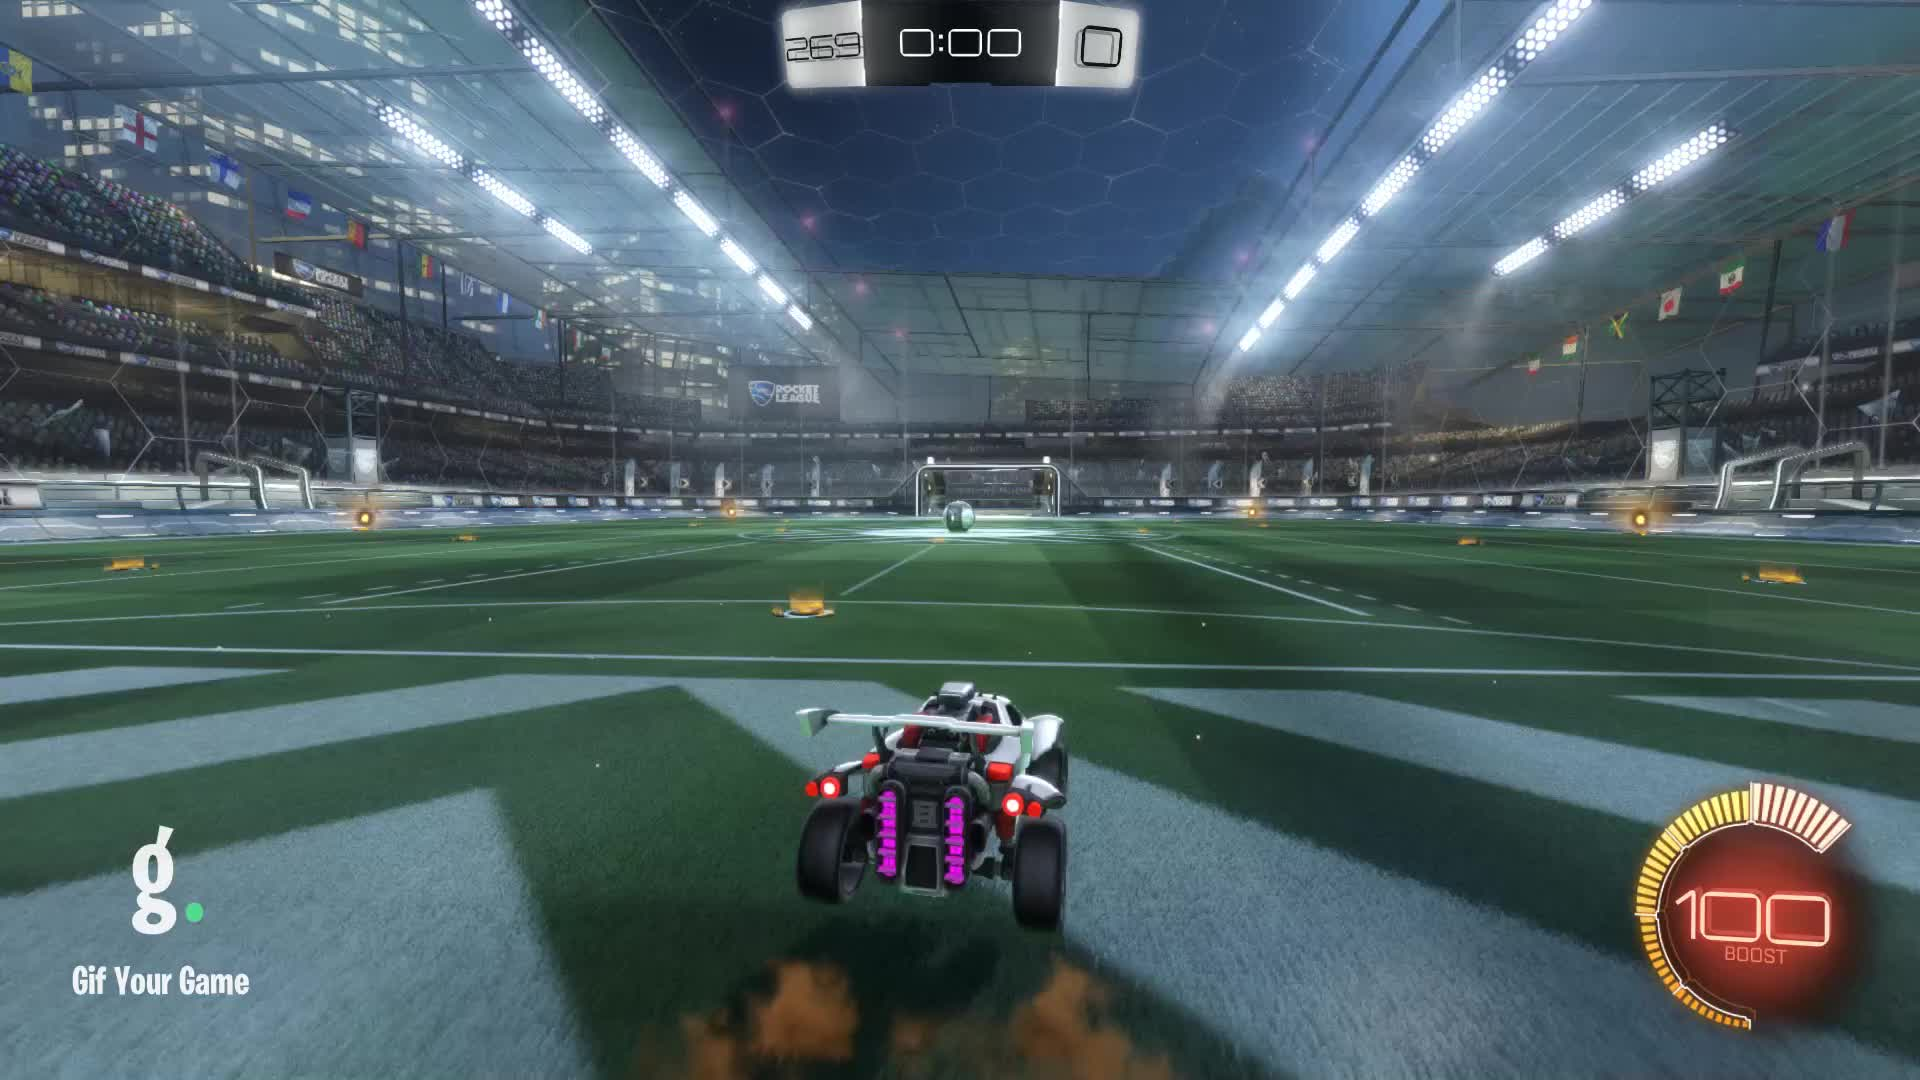 Gif Your Game, GifYourGame, Goal, Rocket League, RocketLeague, Tricks, Goal 1: Tricks GIFs